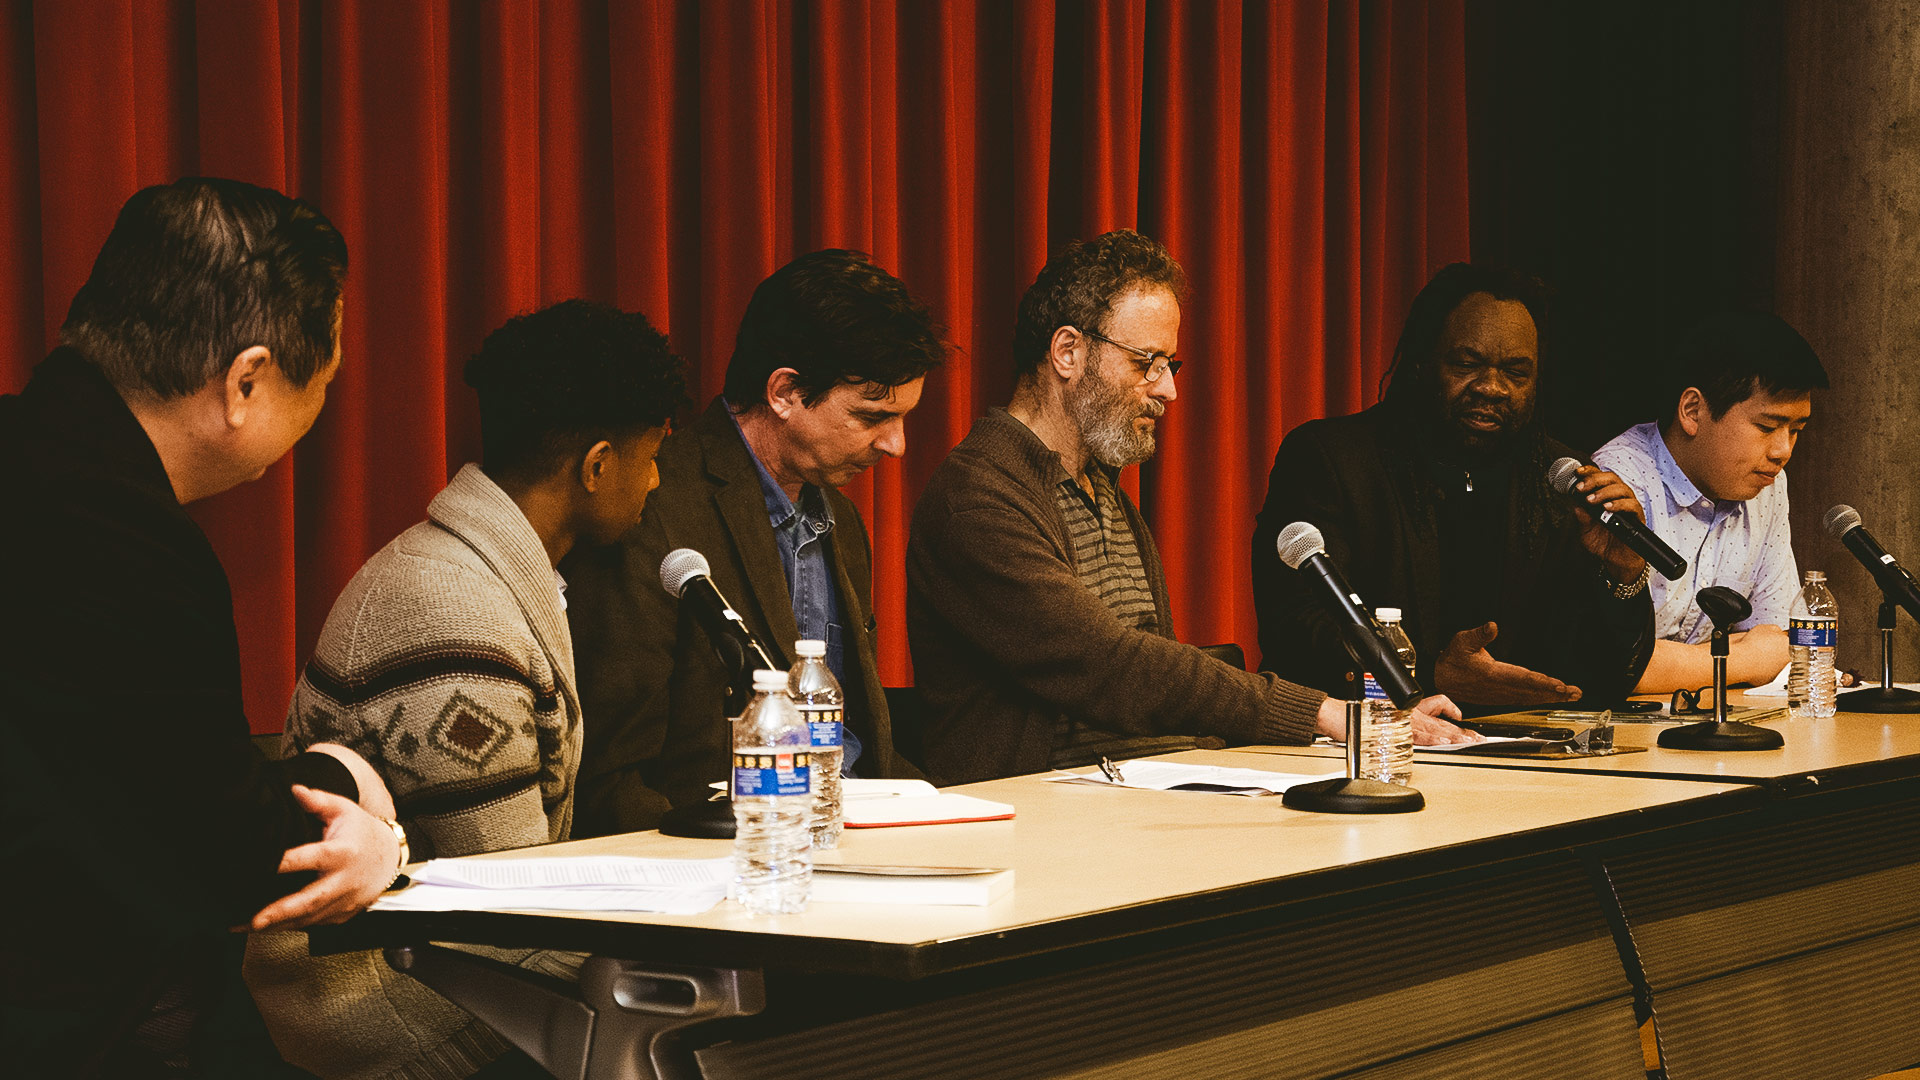 Panel of men speaking